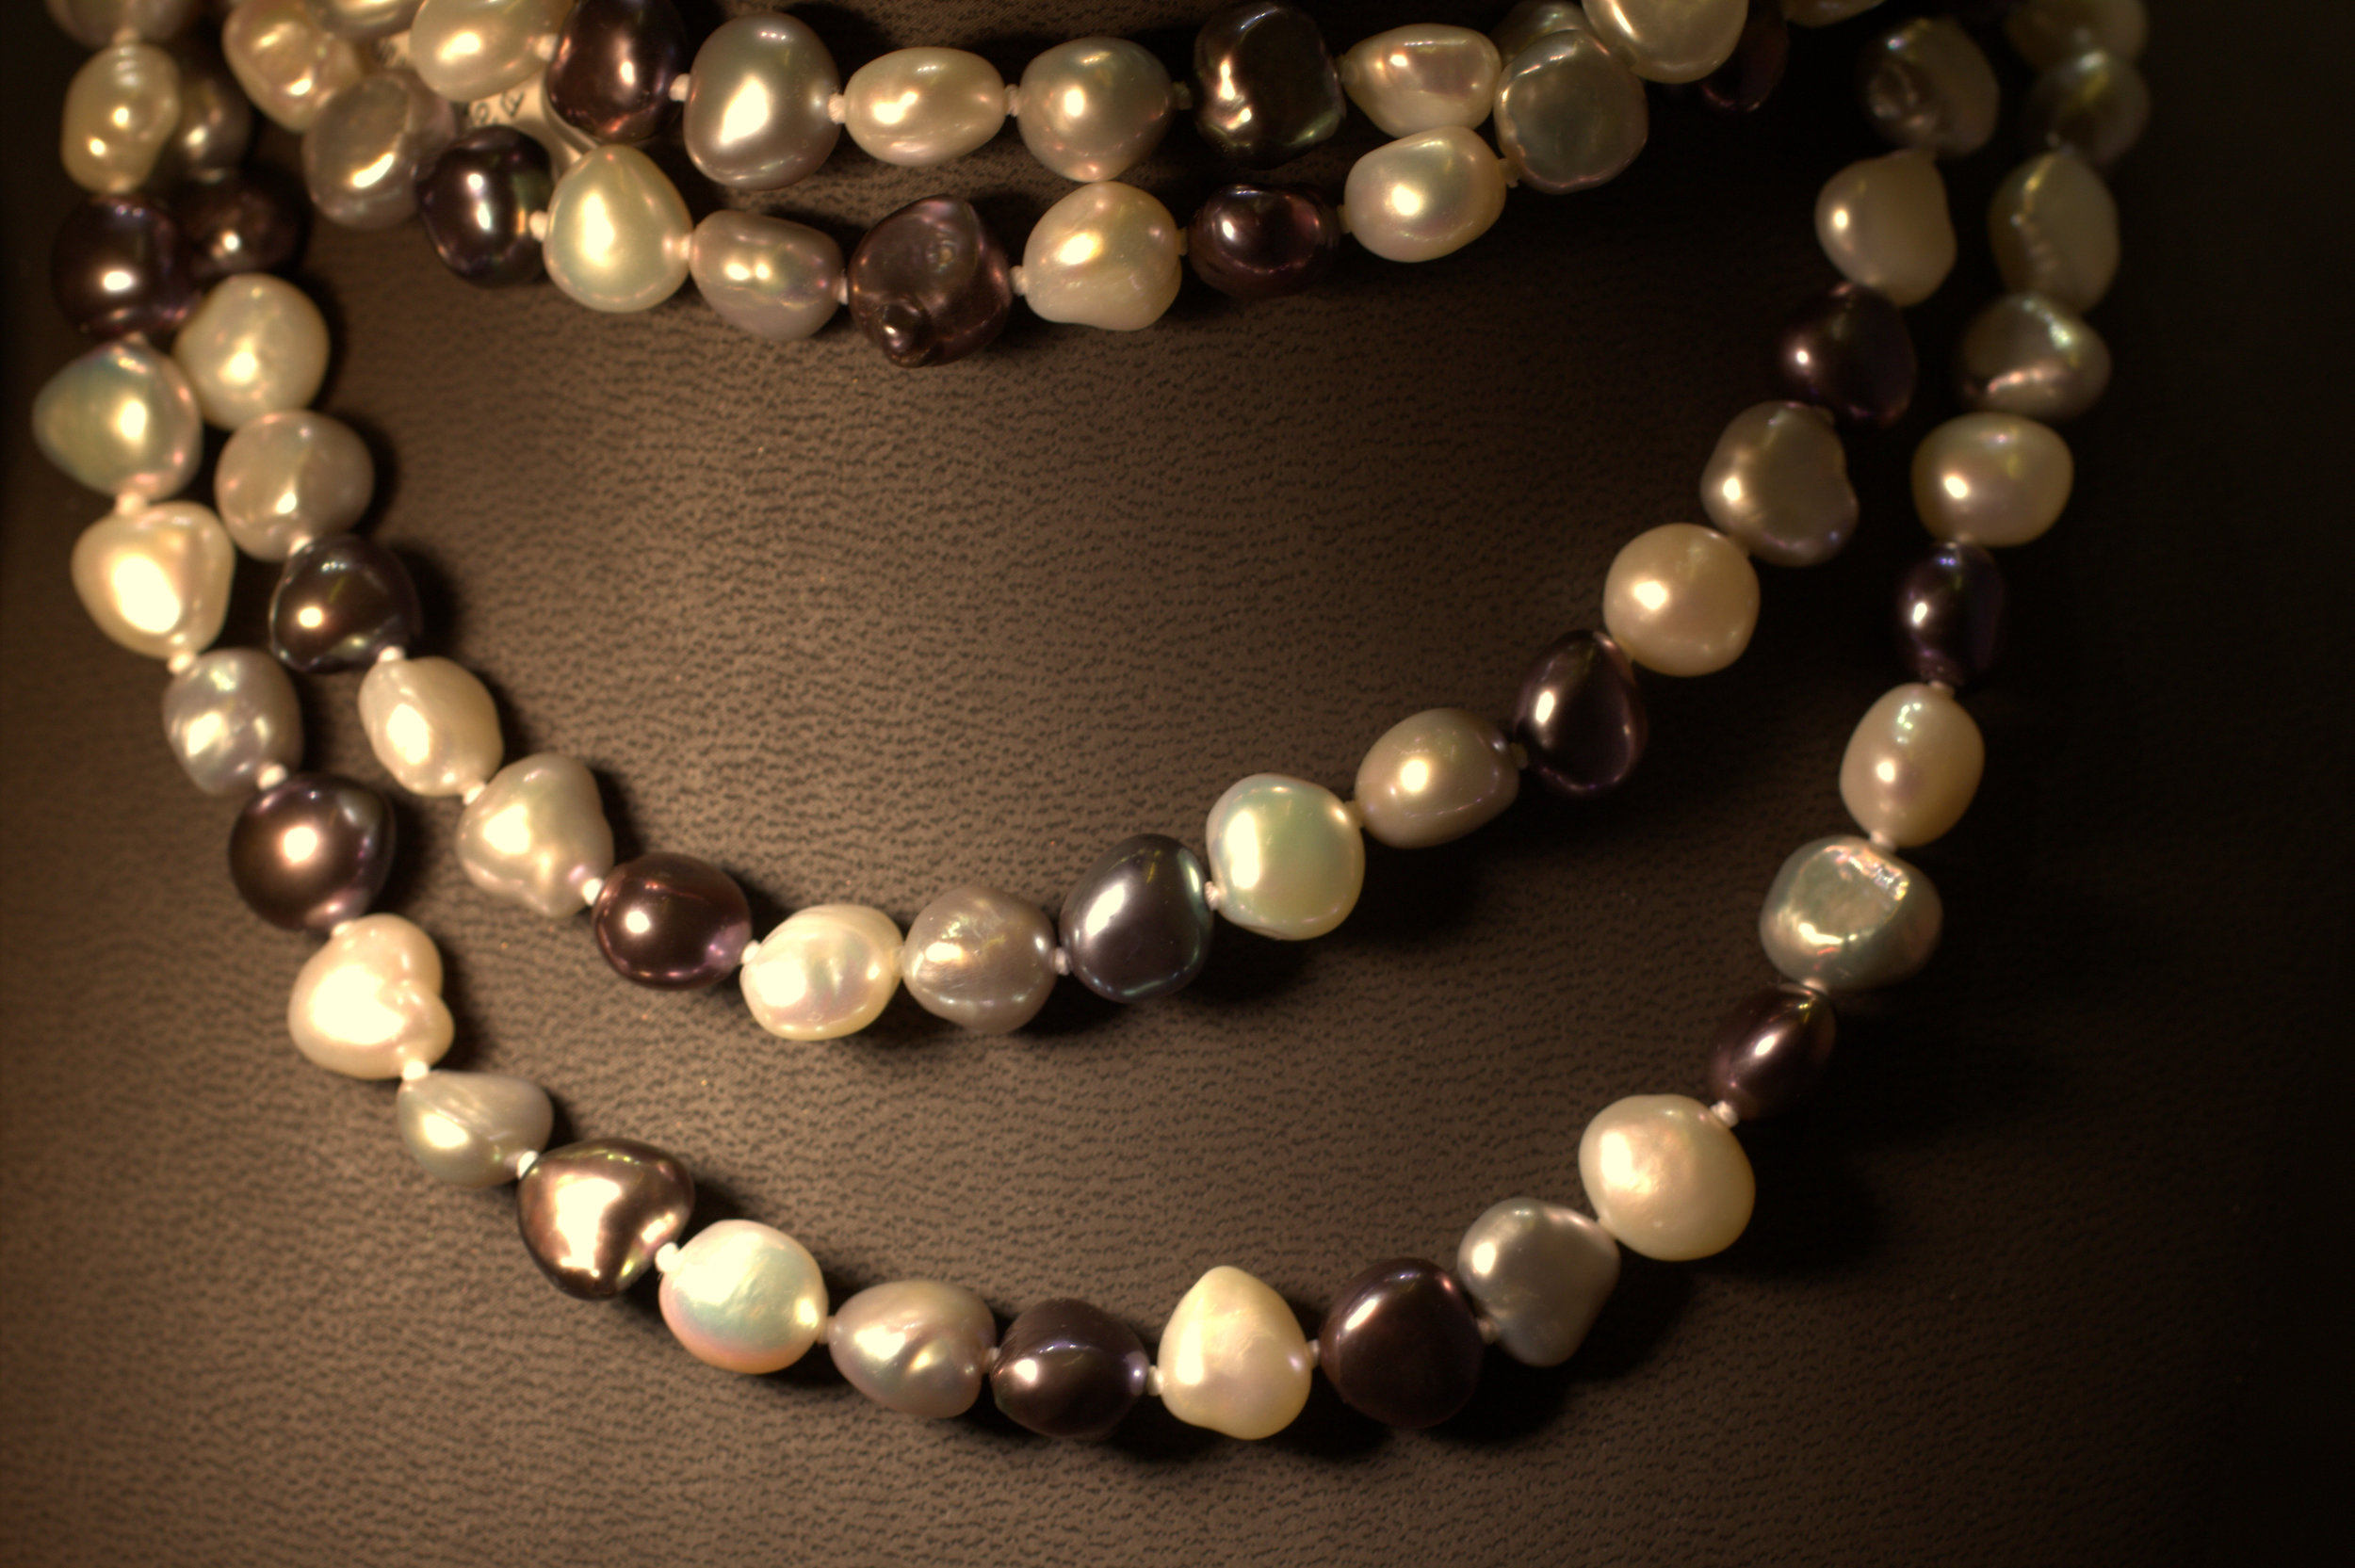 Classic yet chic 54 inch strand of natural black and white freshwater pearls with color enhanced burgundy purple pearls. Hottest new trend, and great gift idea.   $250